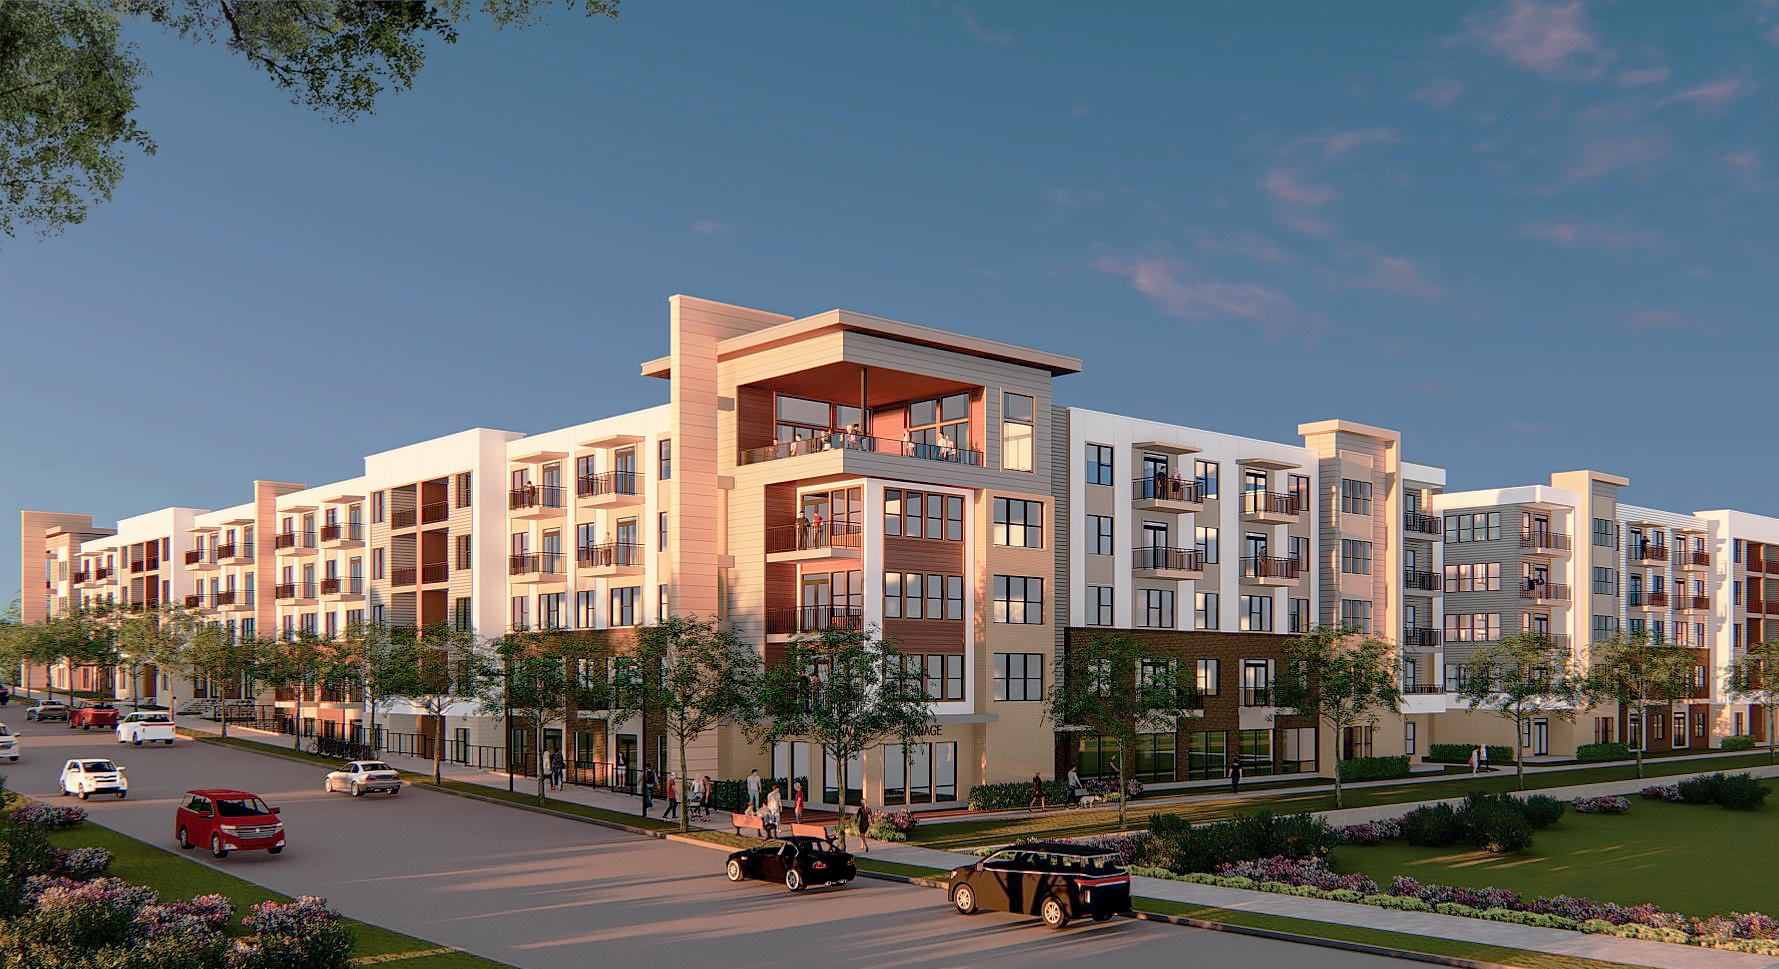 A rendering showing a four-story apartment community with a blue sky above.